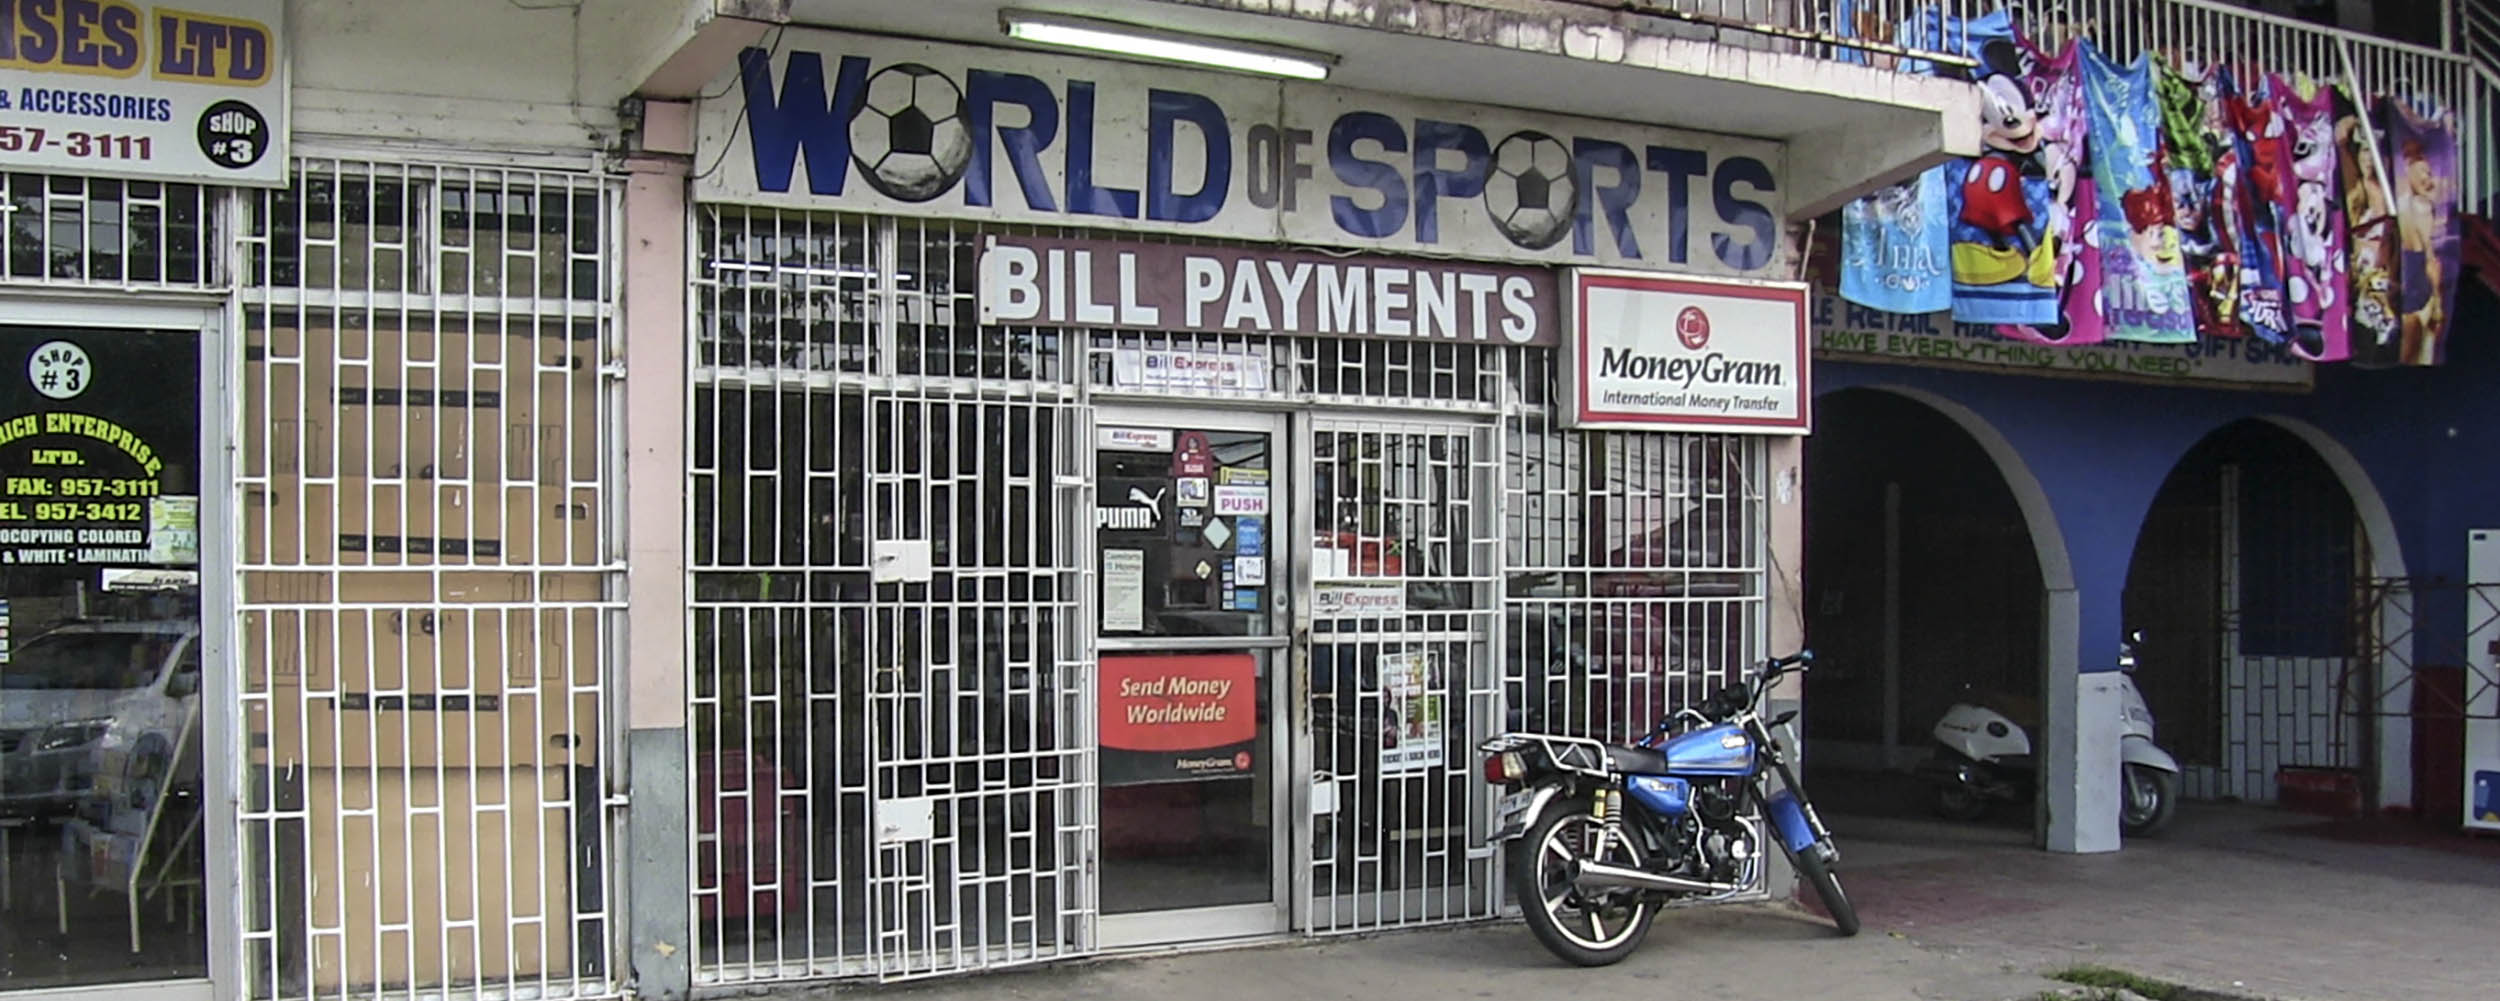 World of Sports - Value Master Plaza - Negril Jamaica